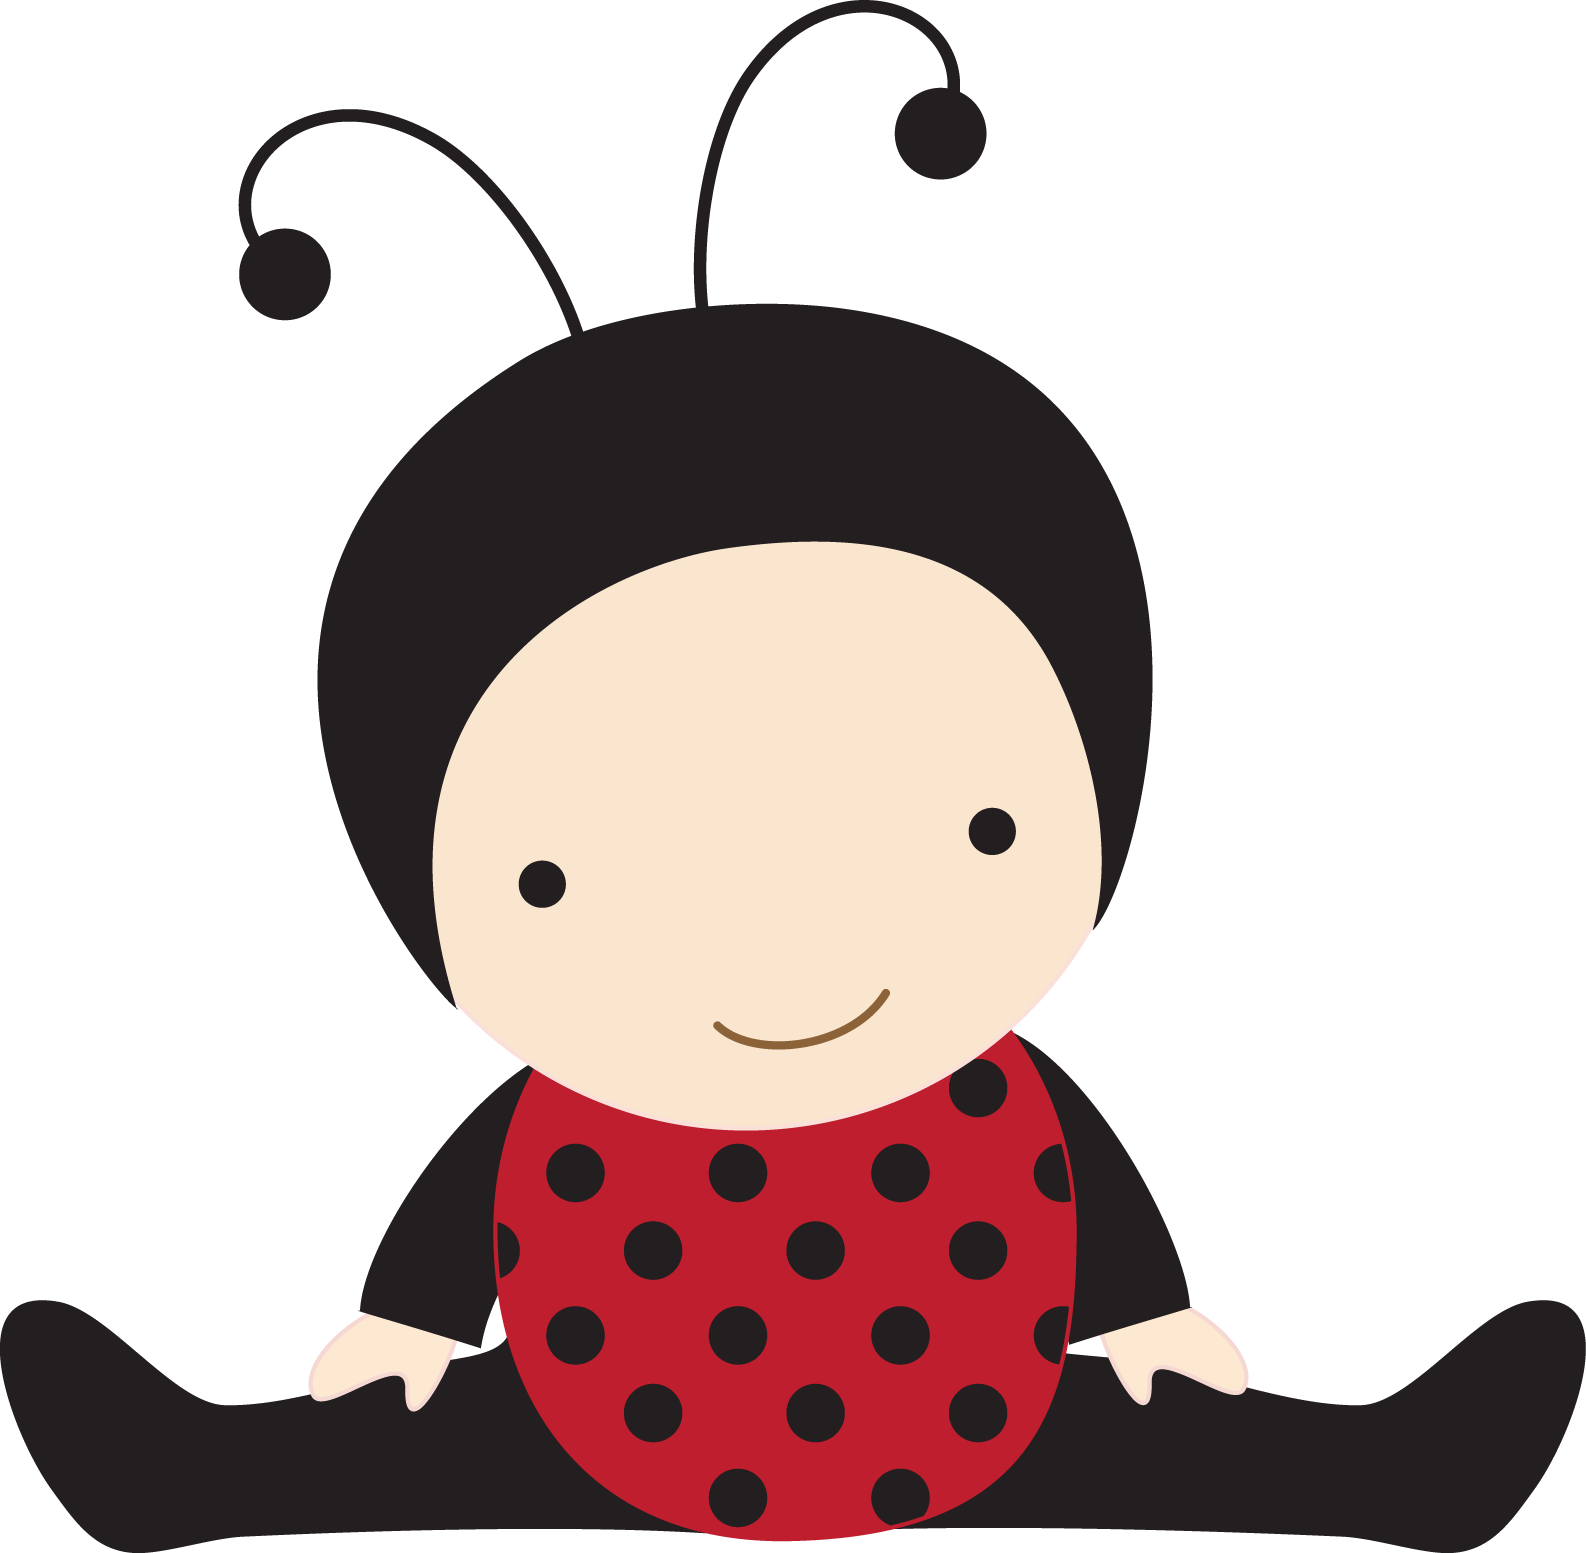 Ladybug baby clipart vector free download Cute Ladybug Clipart | Free download best Cute Ladybug ... vector free download